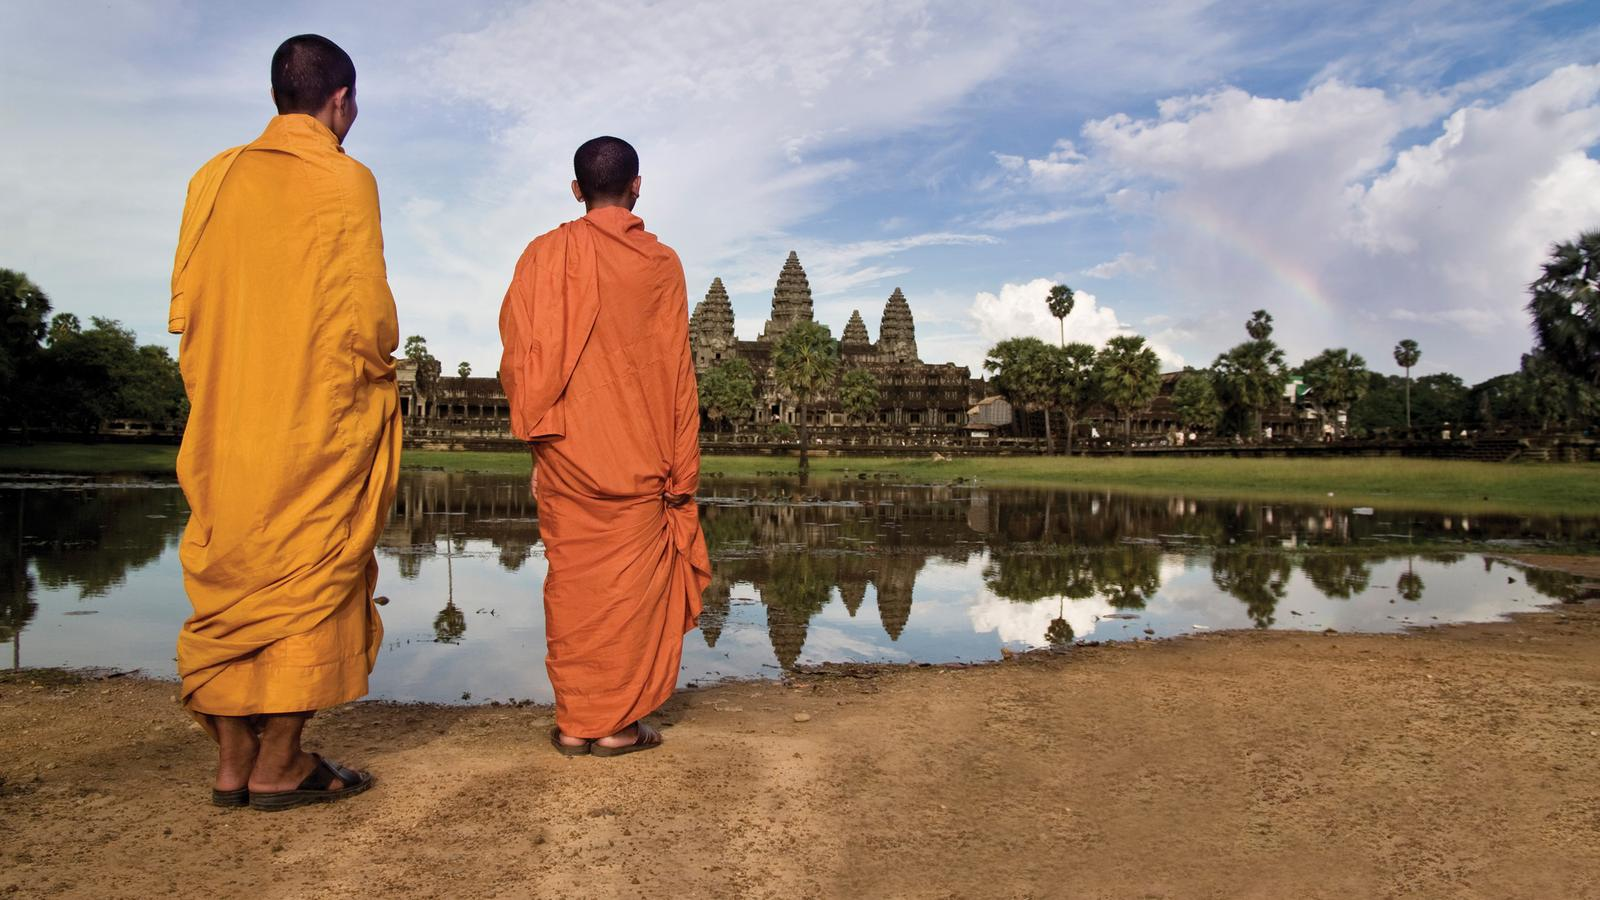 Two monks reflecting over the ancient Angkor Wat temple